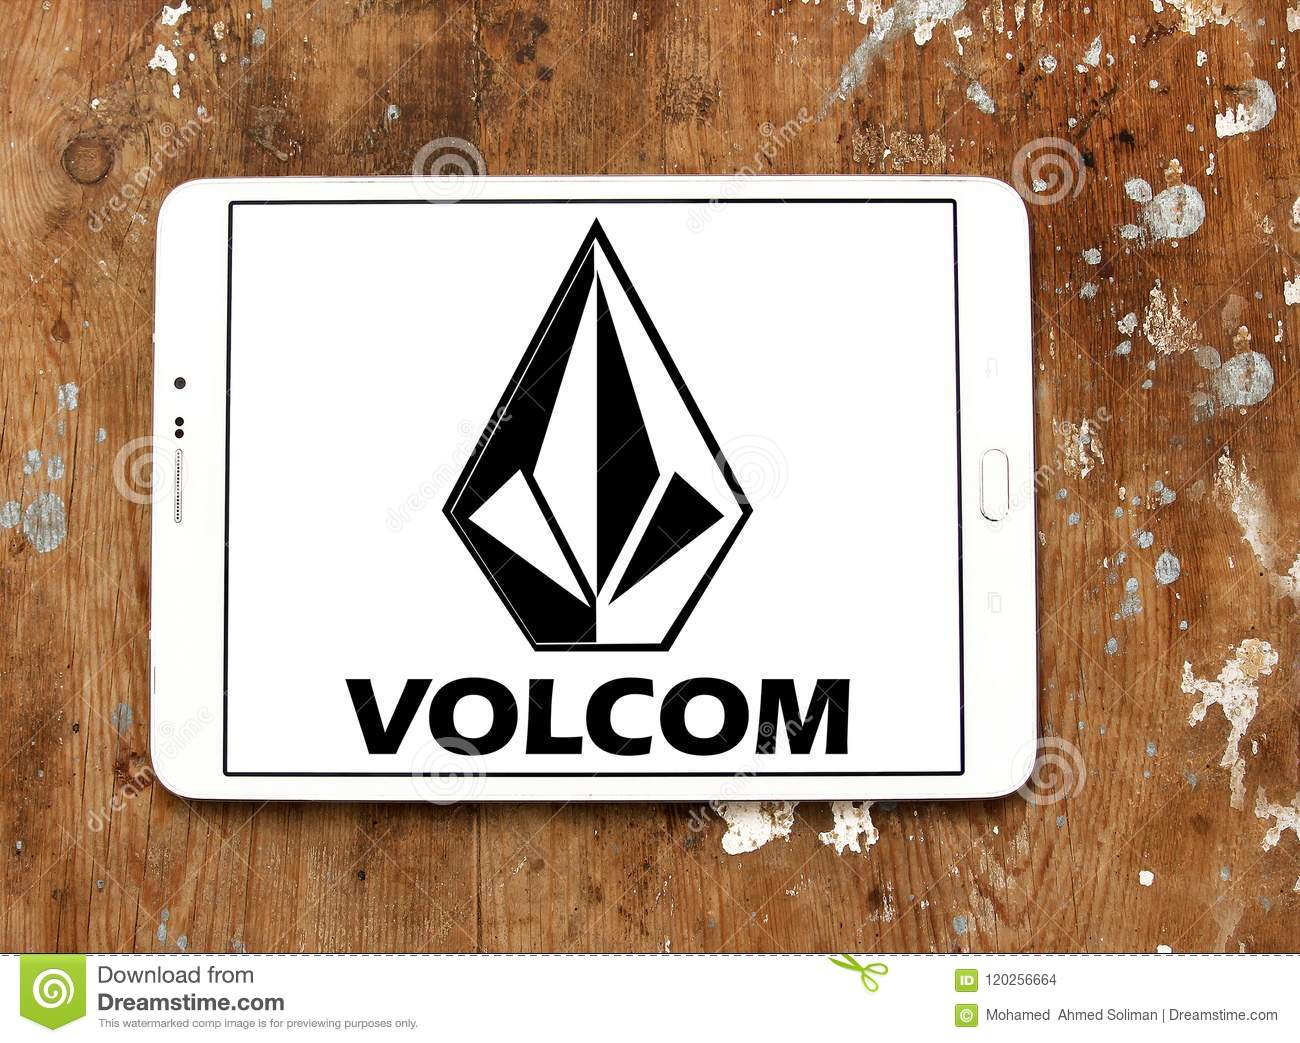 ba55d2145cd6 Logo of Volcom clothing brand on samsung tablet. Volcom is a lifestyle  brand that designs, markets, and distributes boardsports oriented products.